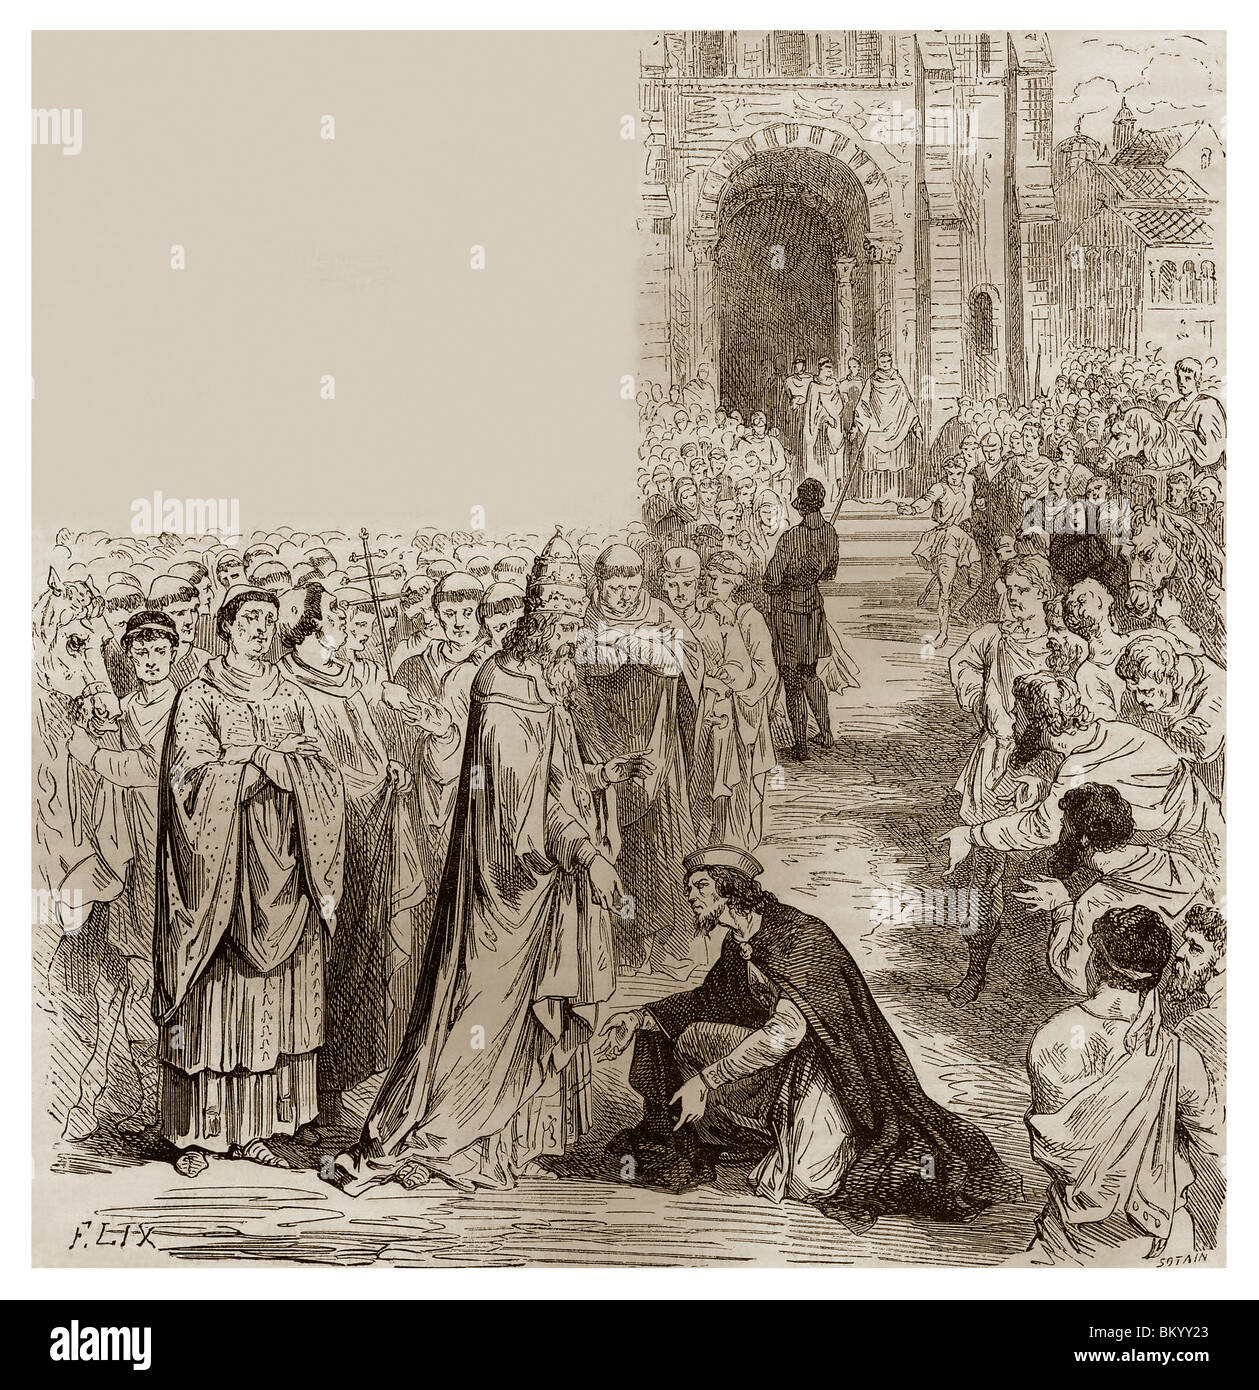 In October 816, Pope Steven IV was received by Louis the Debonaire who bowed down before him when the pope came - Stock Image